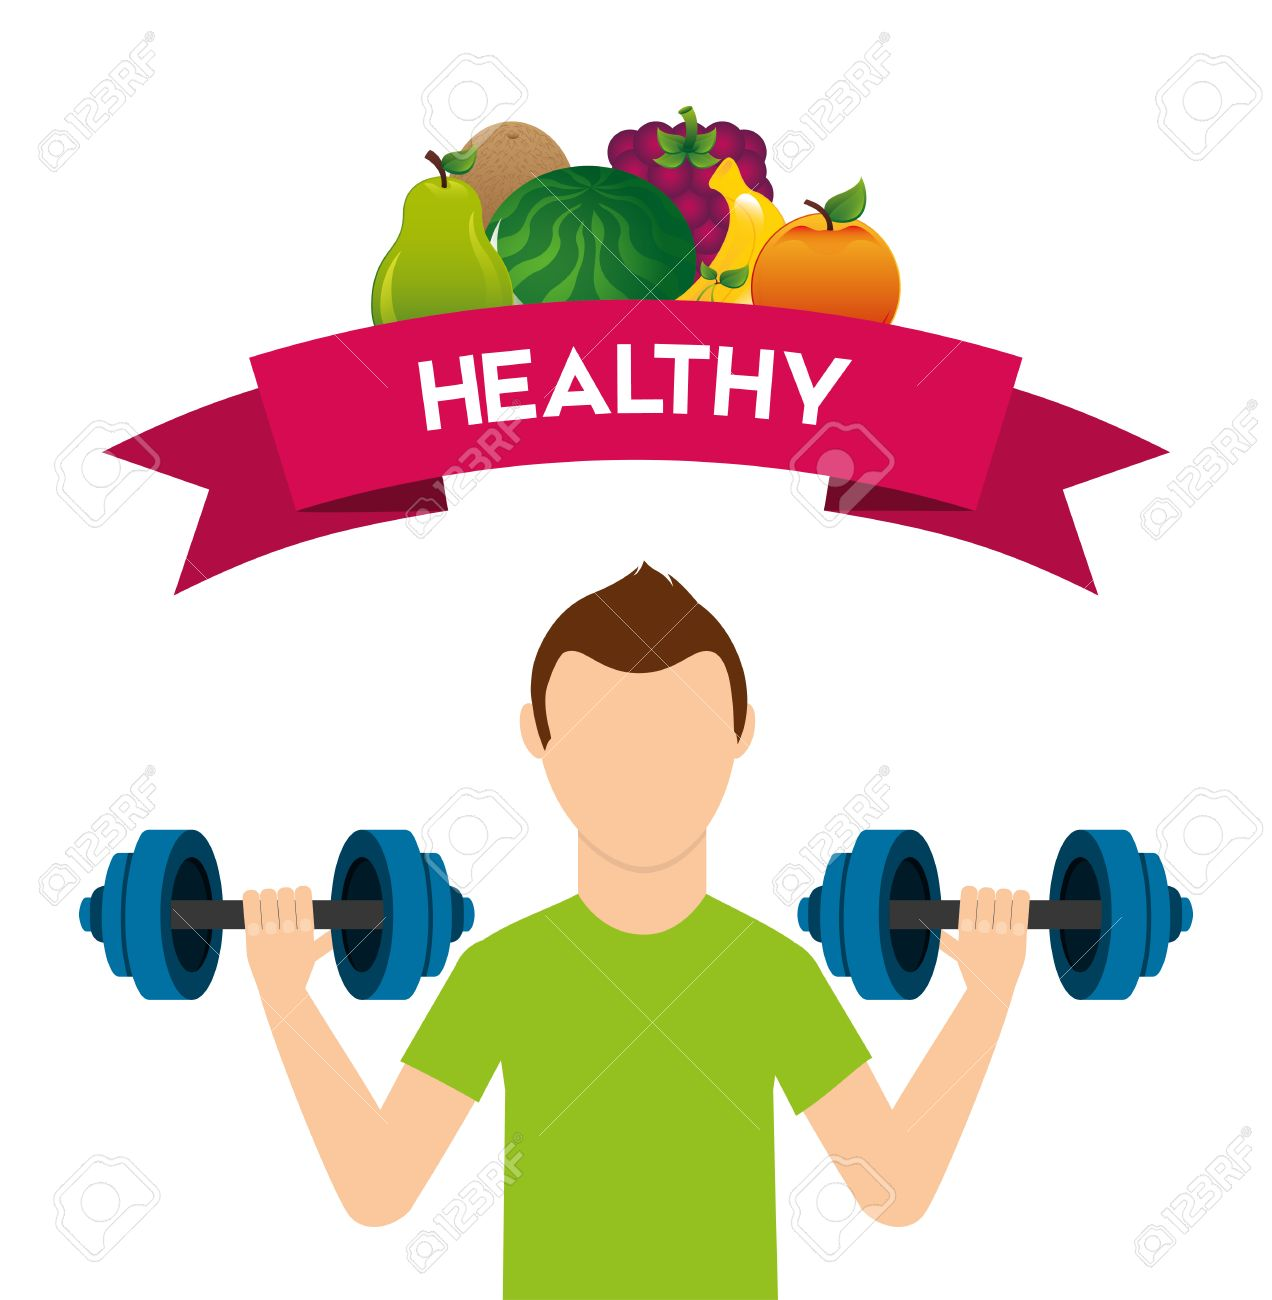 Images of lifestyle free. Exercise clipart healthy living